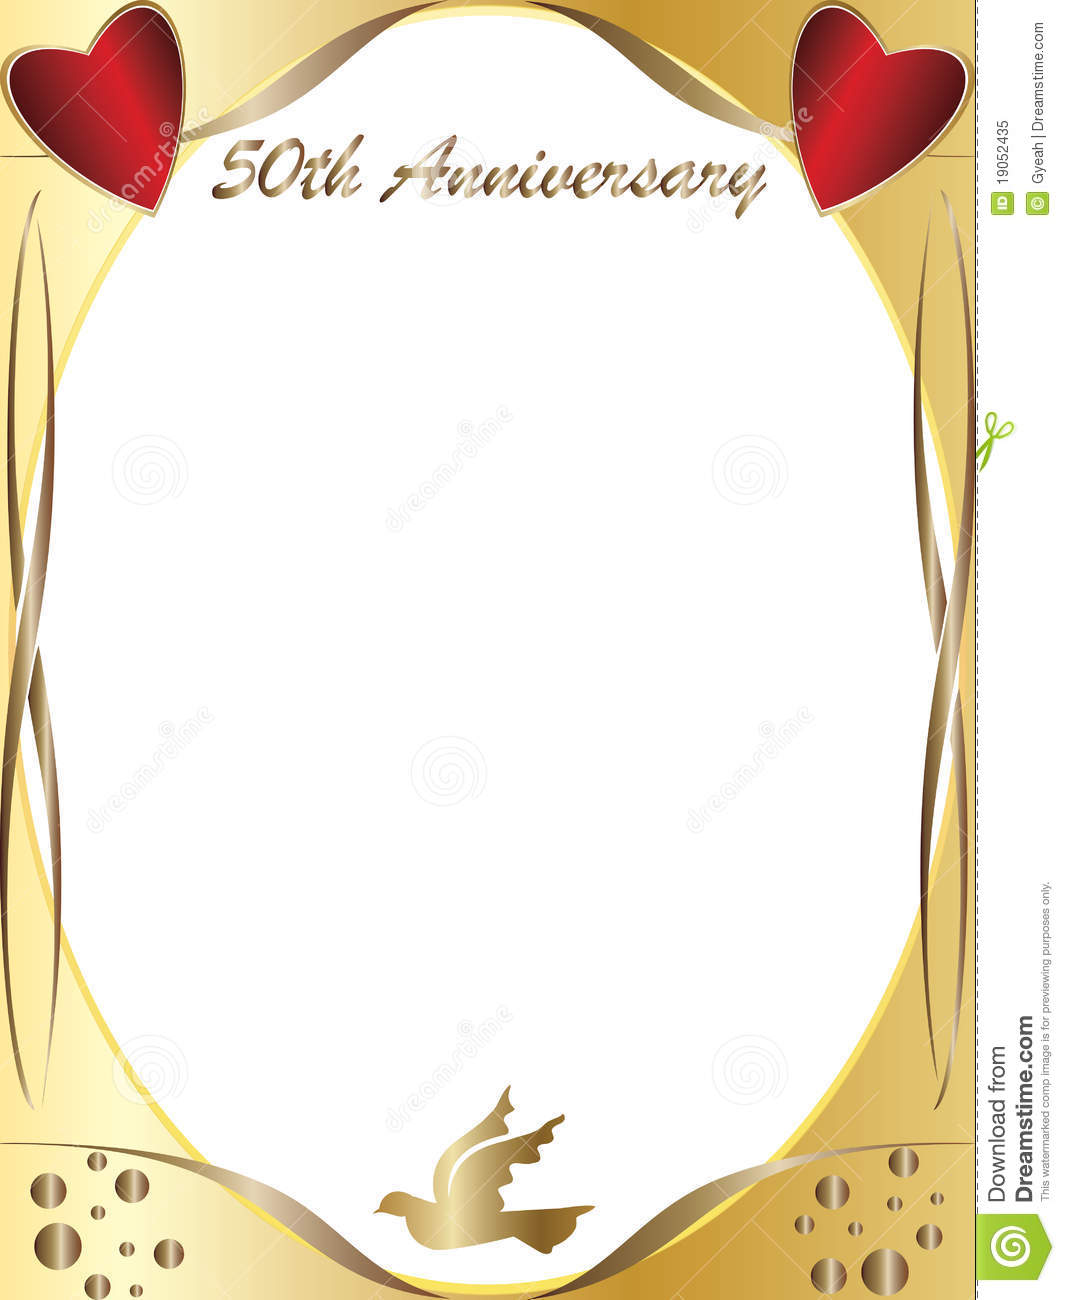 Ideas Free 50th Wedding Anniversary Invitation Templates Editable Birthday Invitations